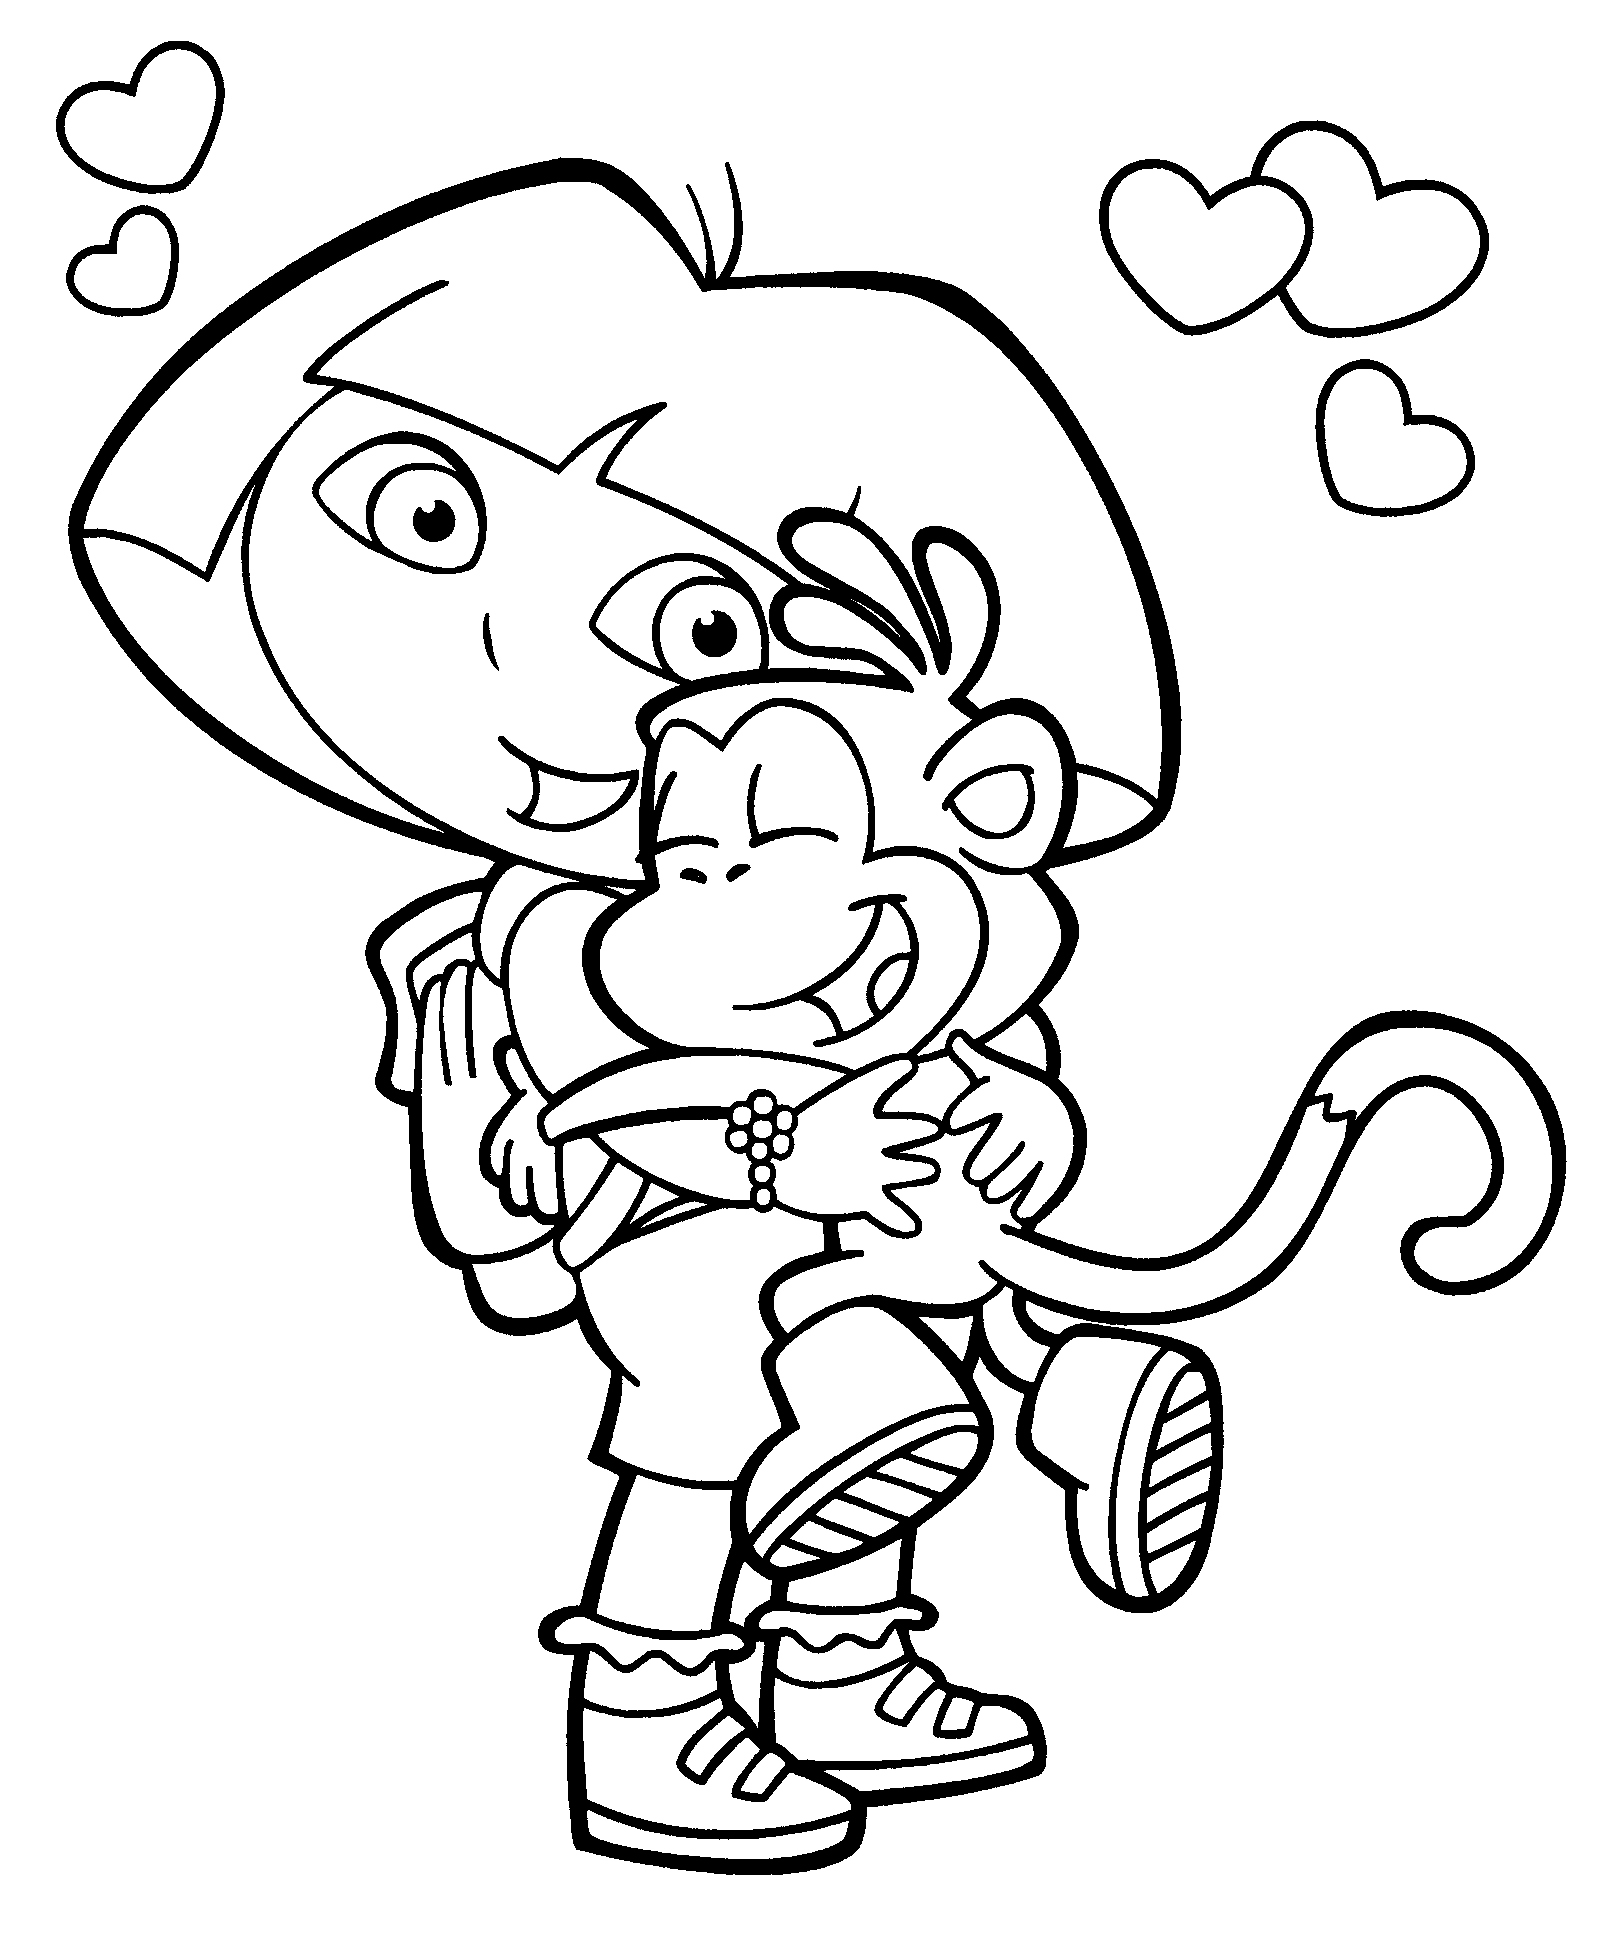 Printable coloring pages nick jr - Download Nick Jr Coloring Pages 21 Print